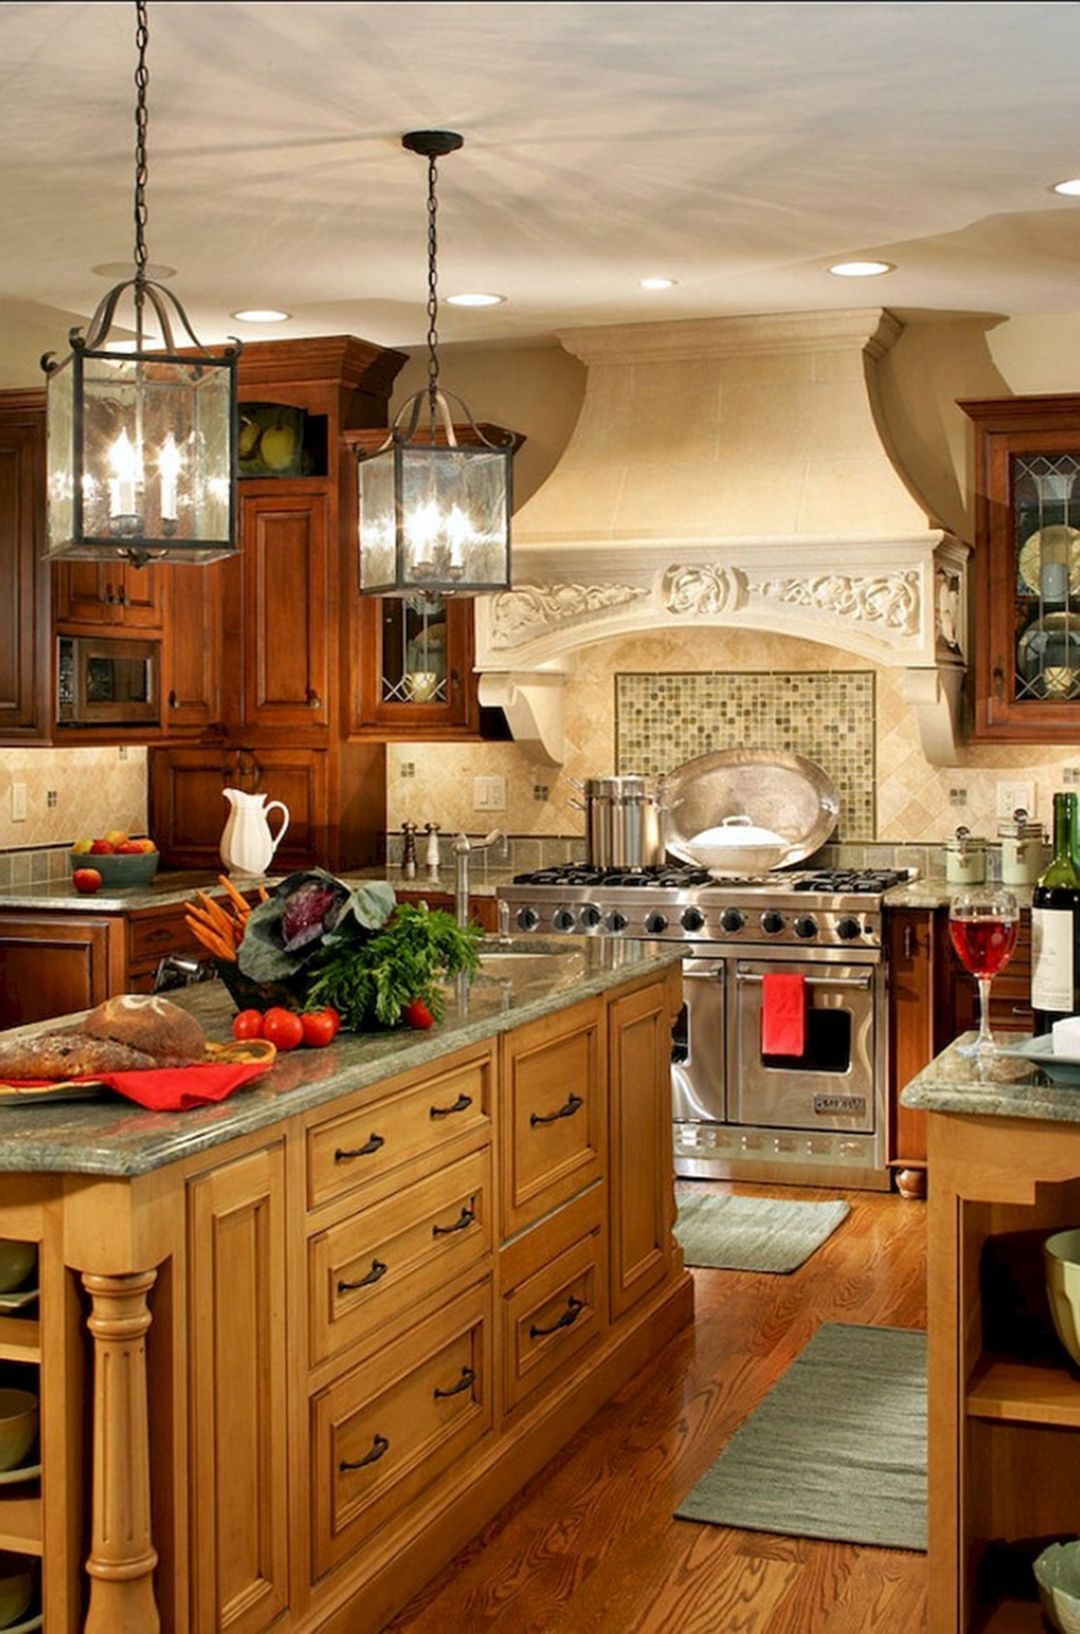 11 elegant modern rustic farmhouse kitchen cabinets ideas in 2020 french country kitchens on kitchen cabinets rustic farmhouse style id=34848